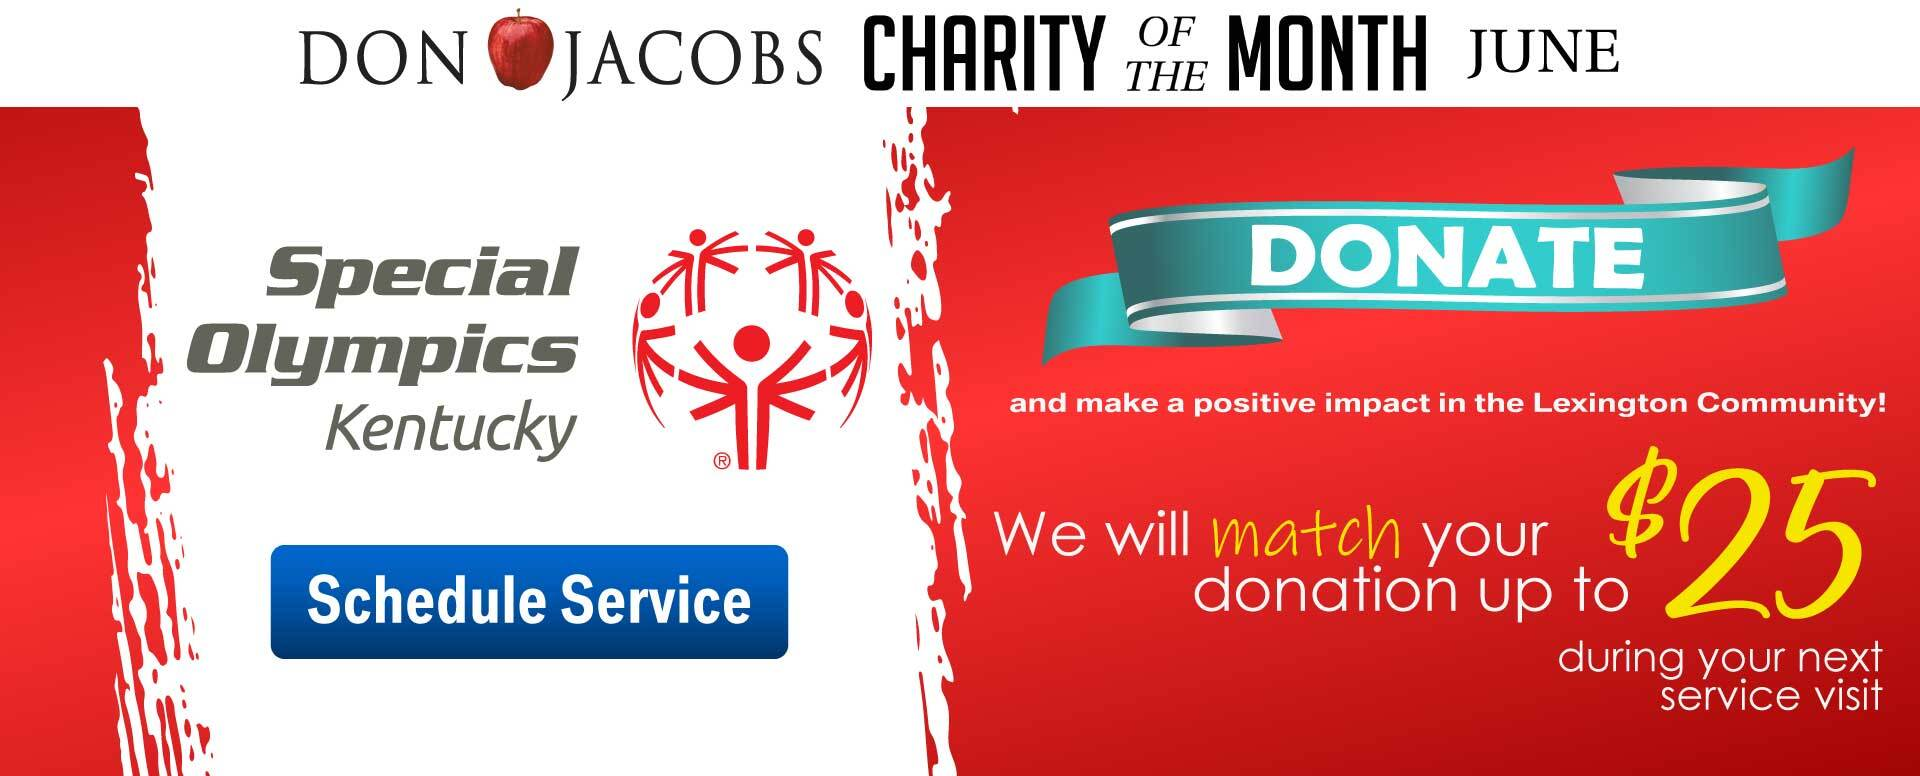 Charity of the Month - Special Olympics